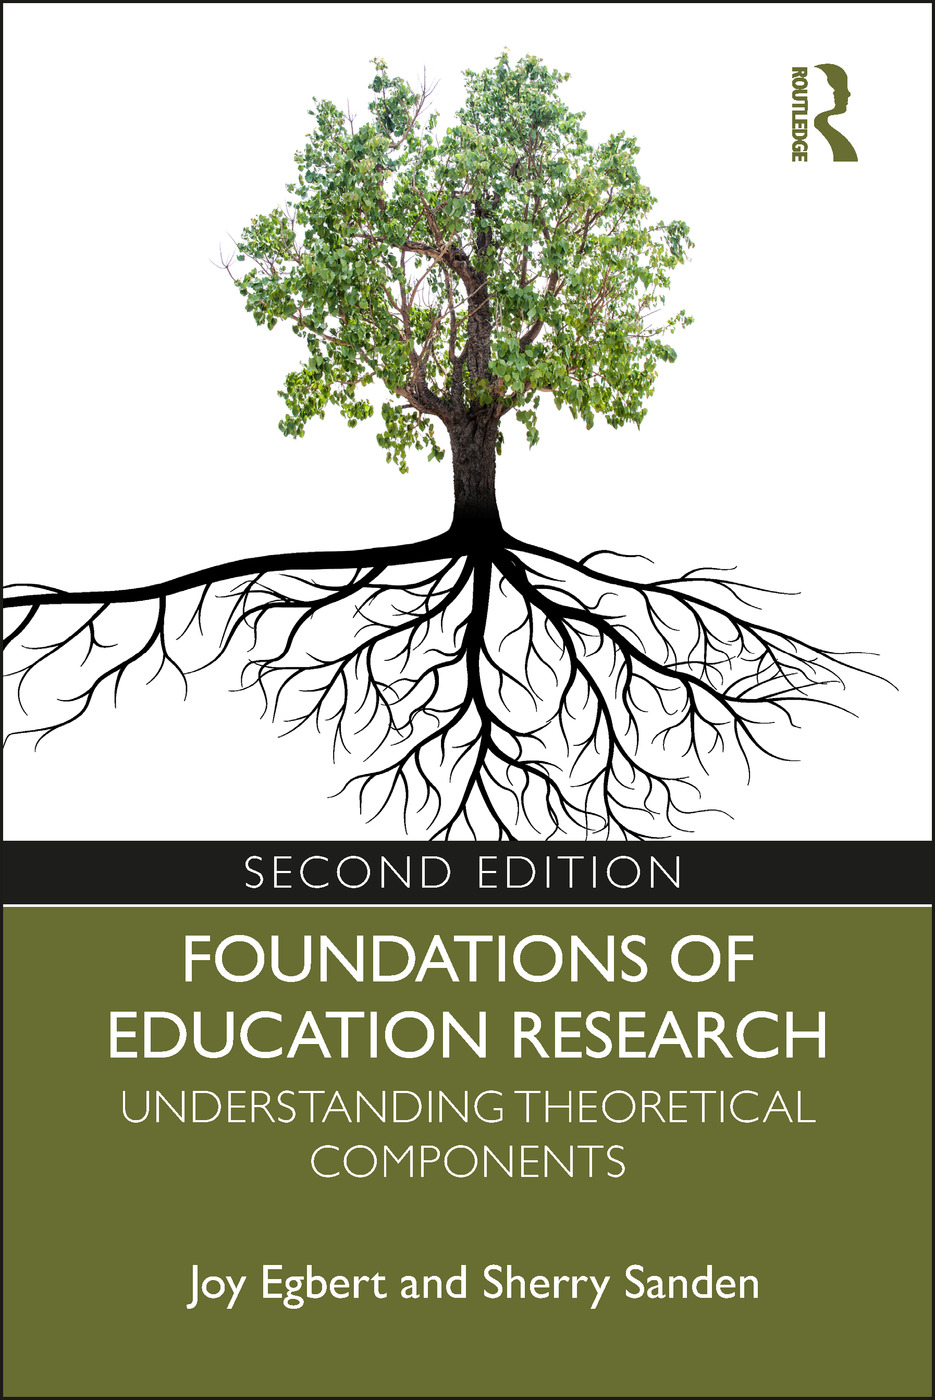 Foundations of Education Research: Understanding Theoretical Components book cover